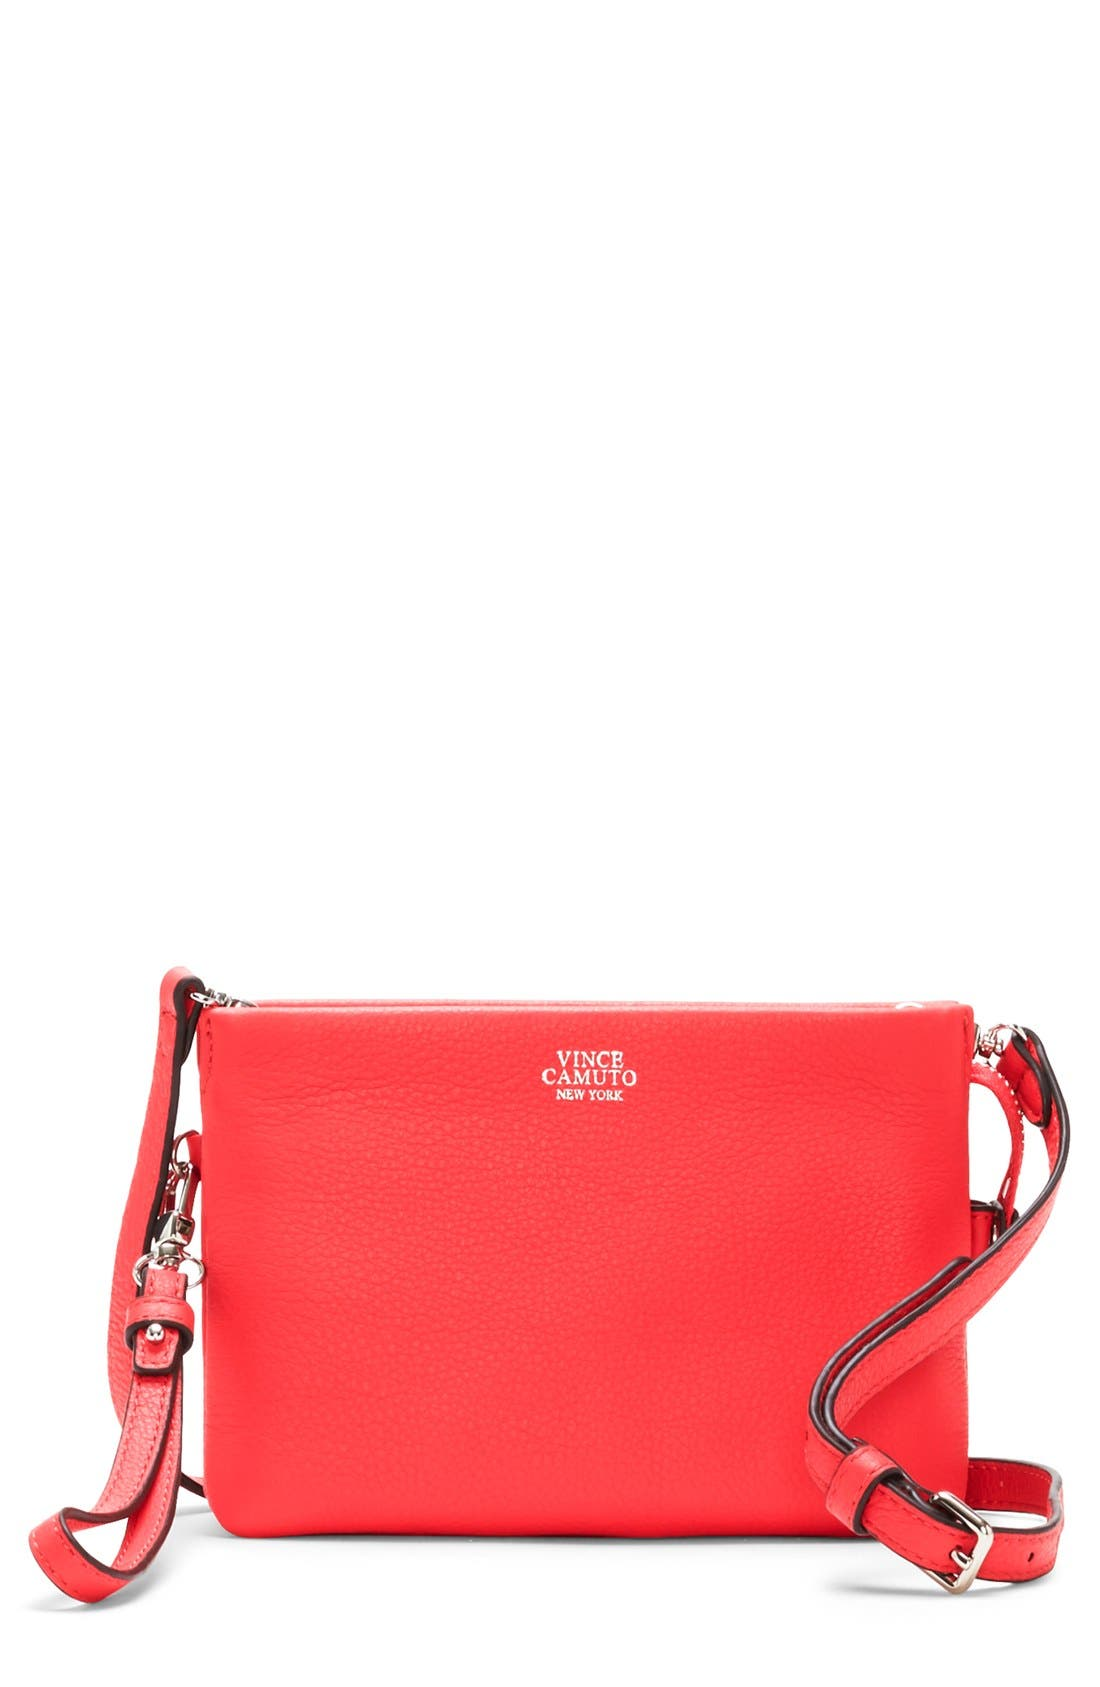 'Cami' Leather Crossbody Bag,                             Main thumbnail 24, color,